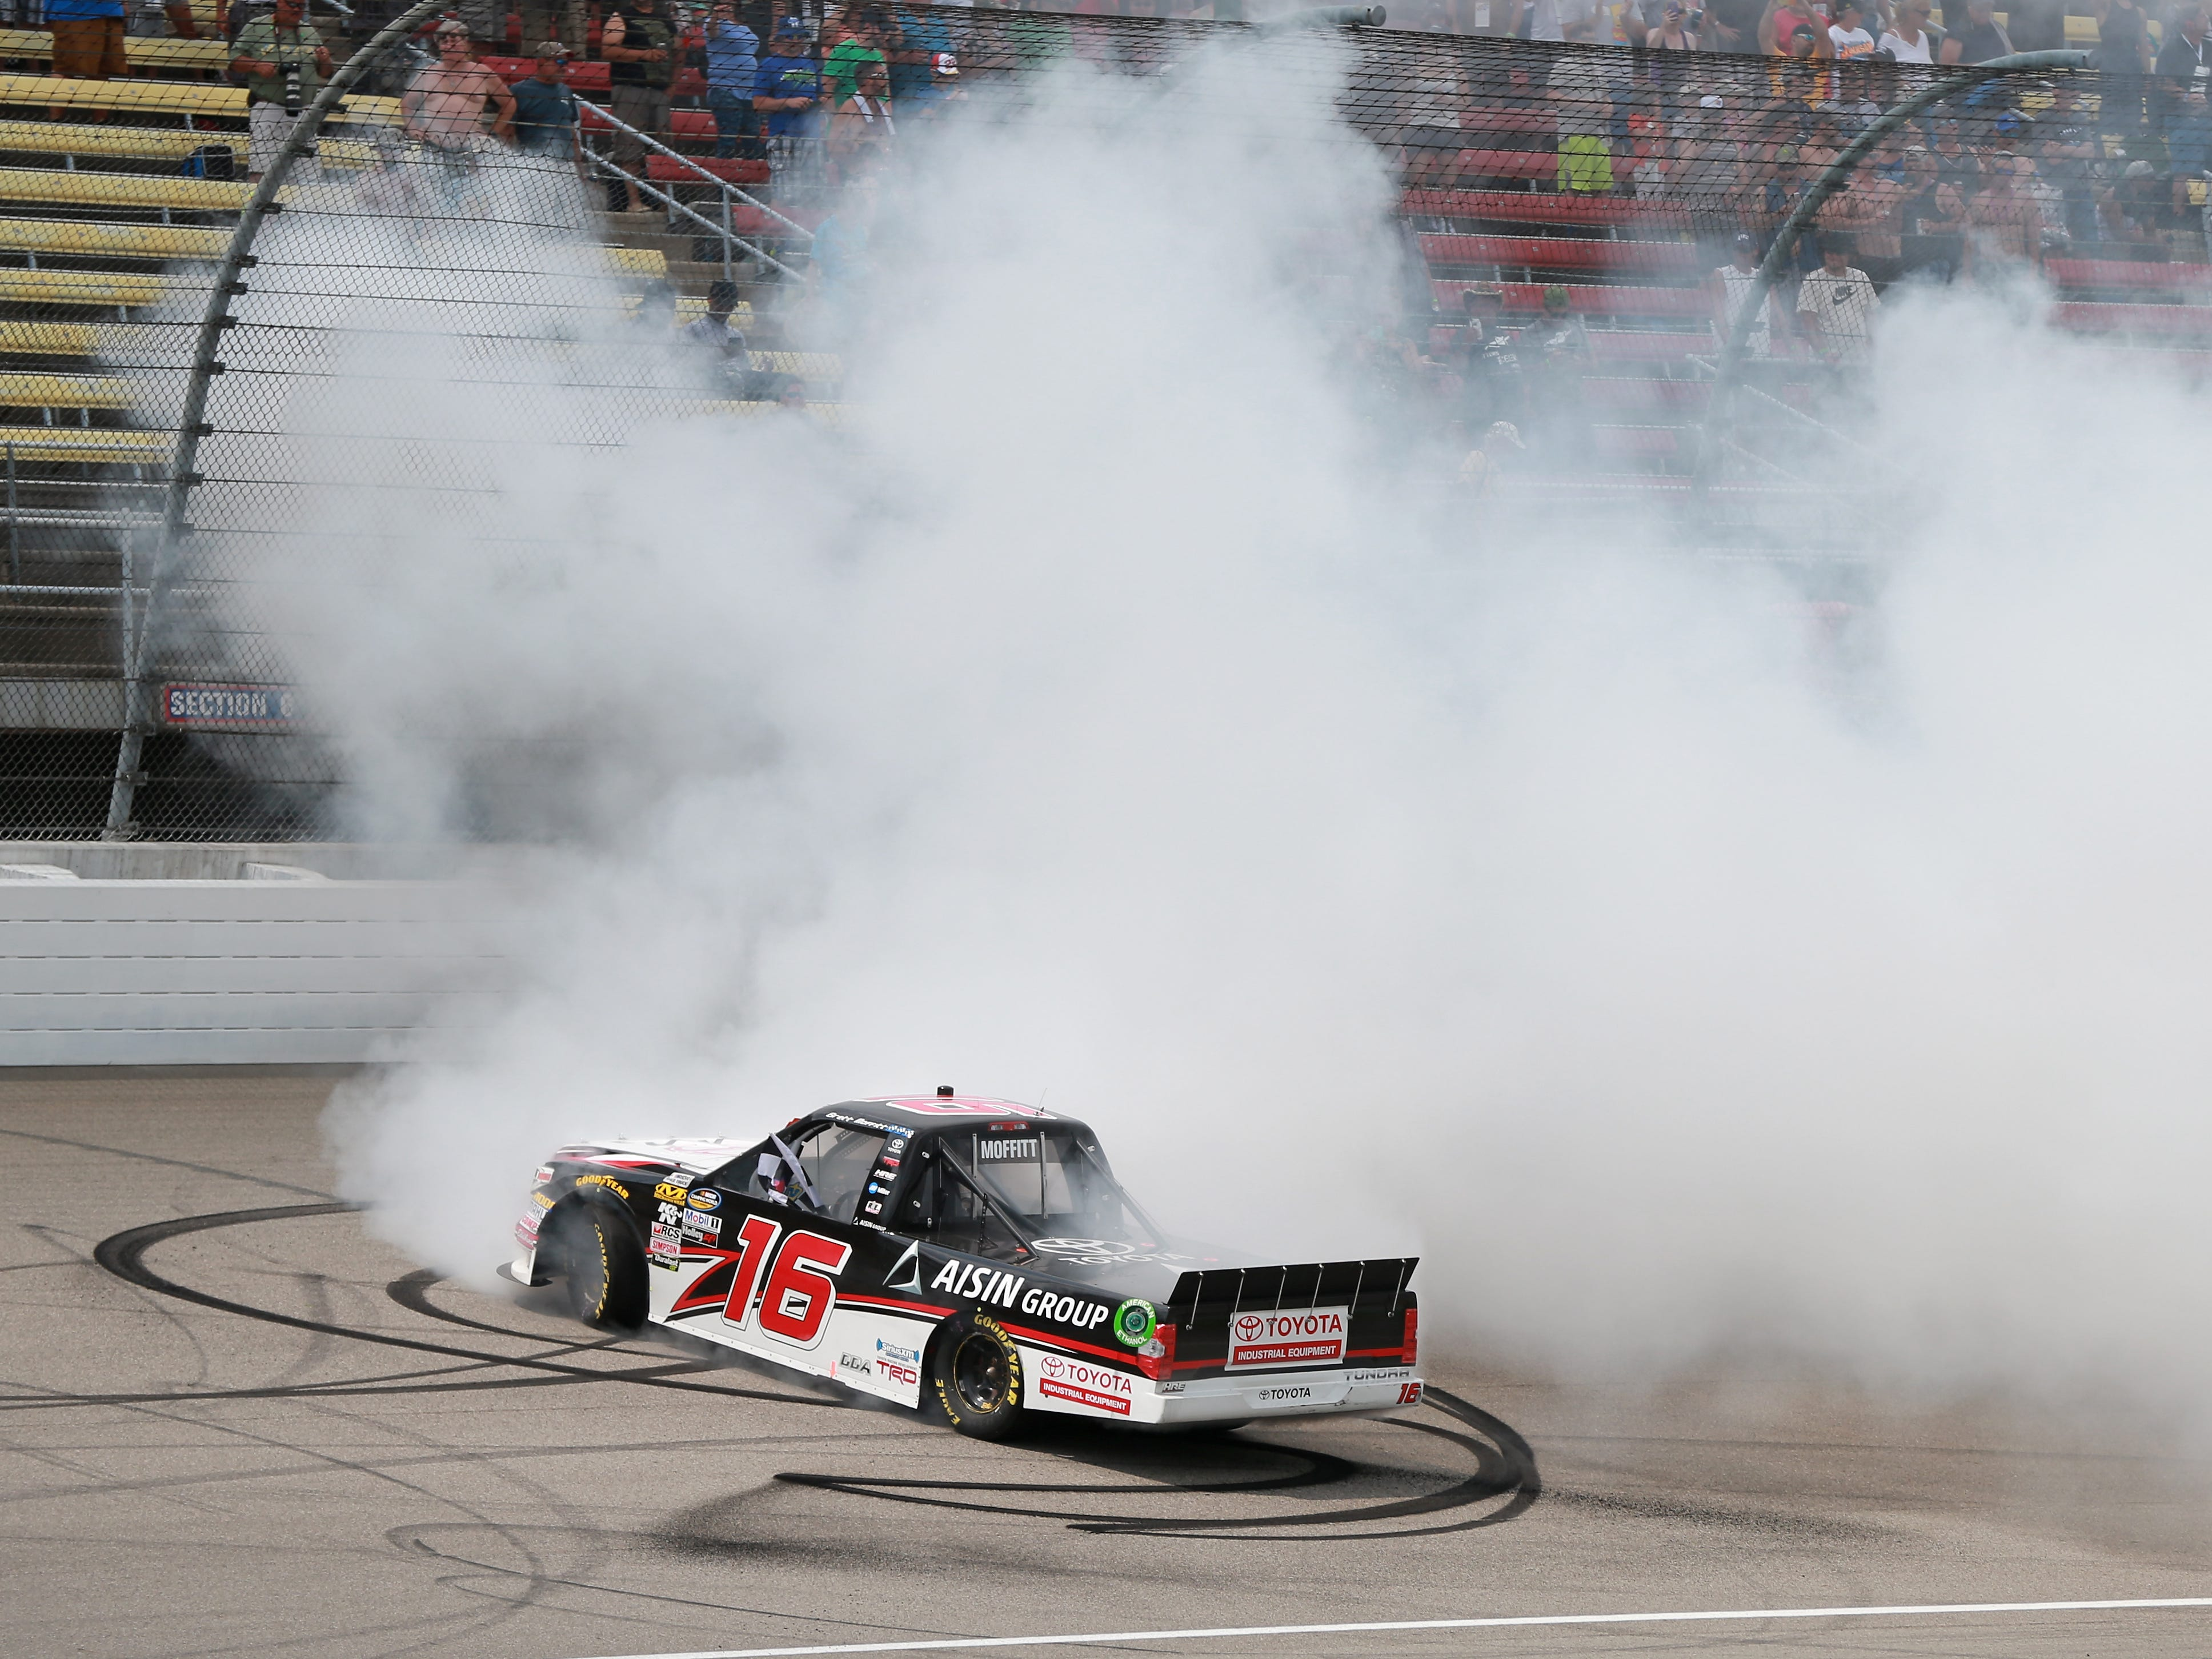 Brett Moffitt, driver of the No. 16 Hino Toyota, celebrates with a burnout after winning the NASCAR Camping World Truck Series Corrigan Oil 200 at Michigan International Speedway on August 11, 2018 in Brooklyn.